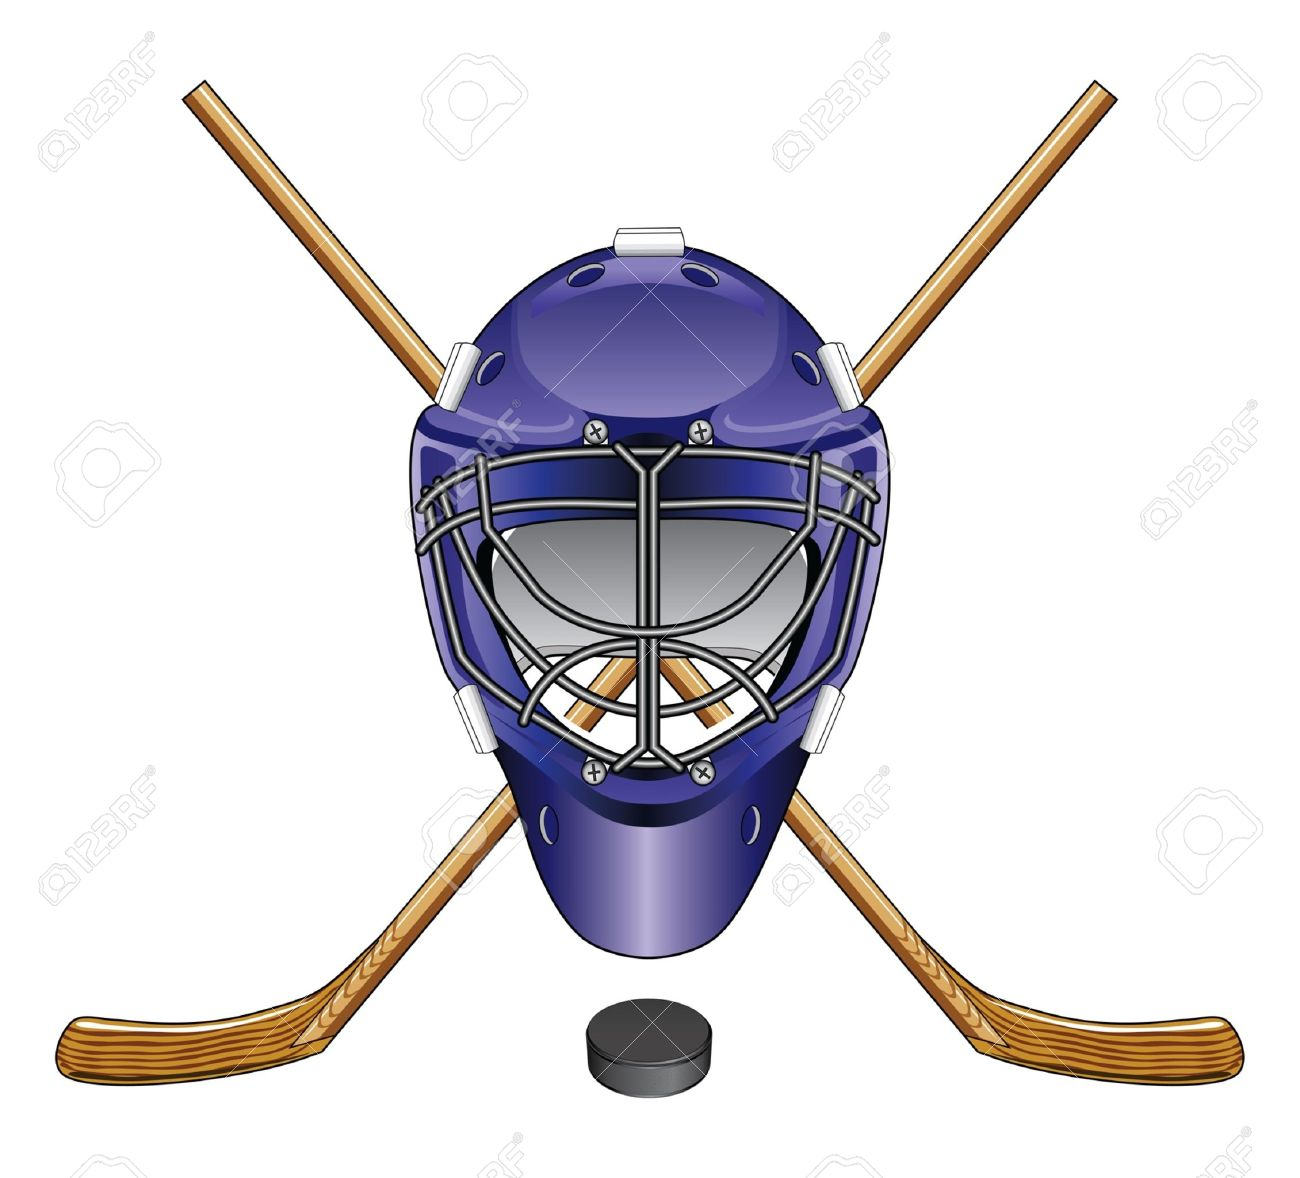 1300x1178 Ice Hockey Goalie Mask Sticks And Puck Is An Illustration